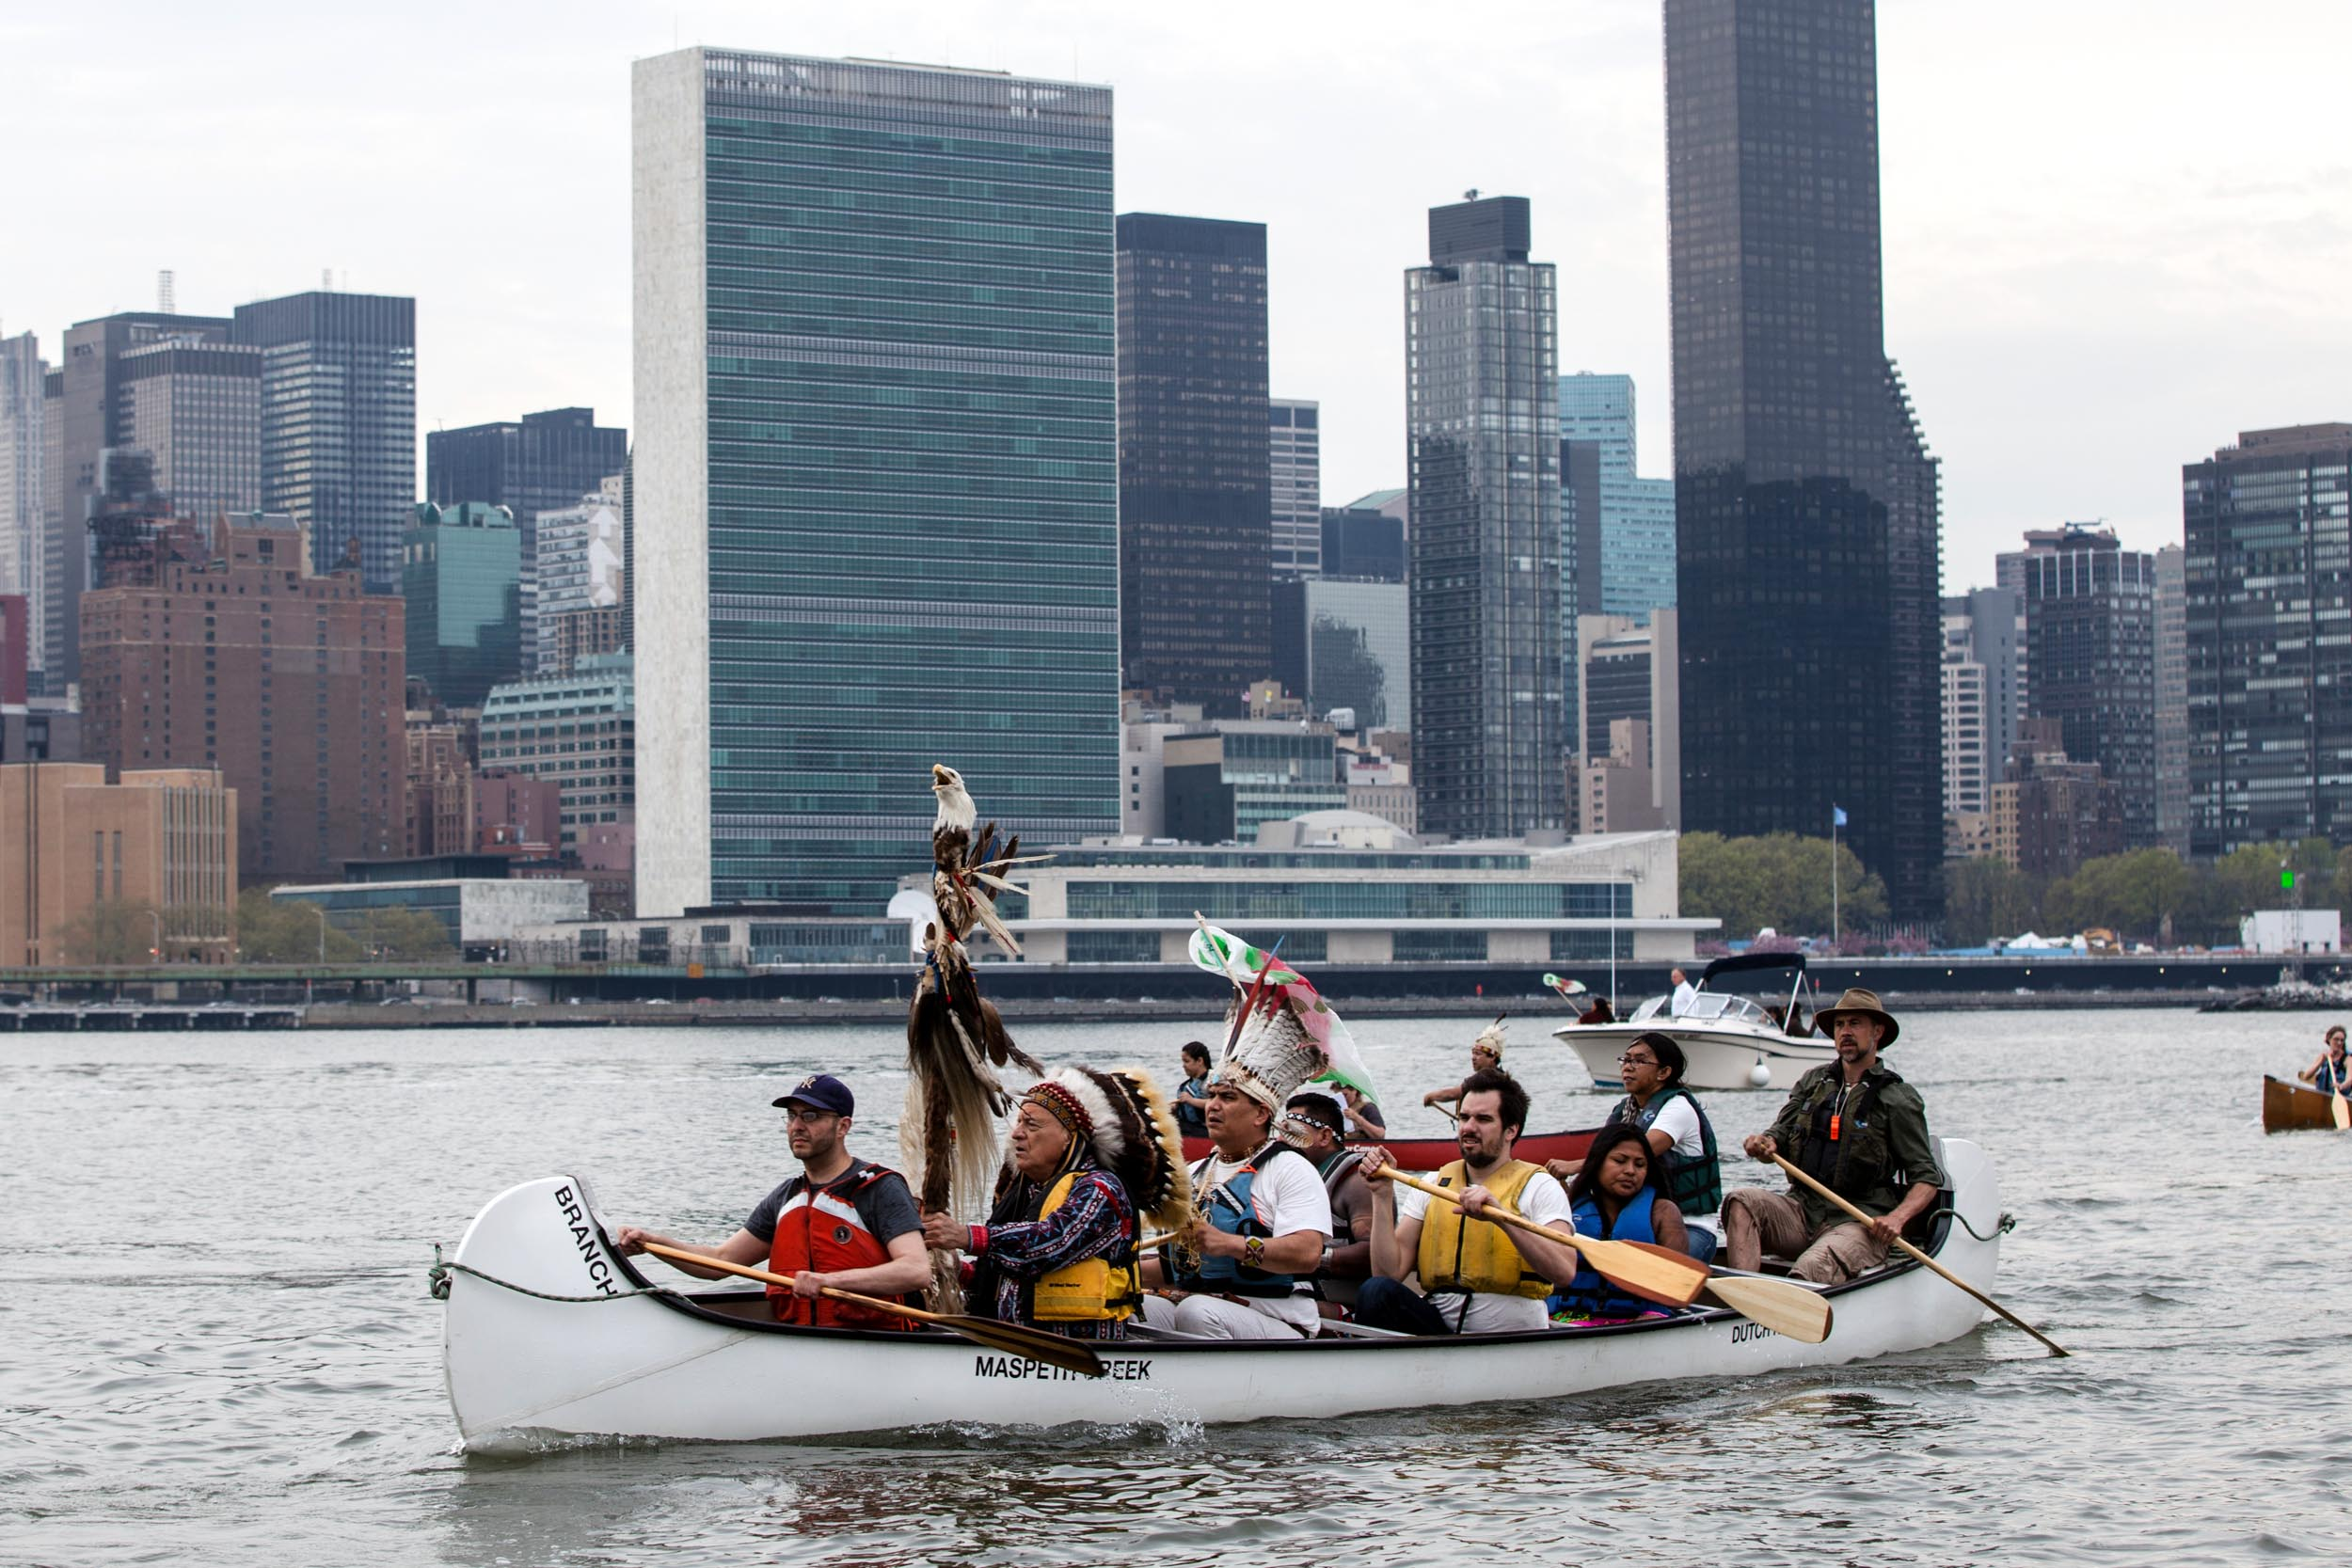 International indigenous leaders stage an action paddling canoes to NYC's UN building, where 2016 climate talks were taking place without their inclusion.